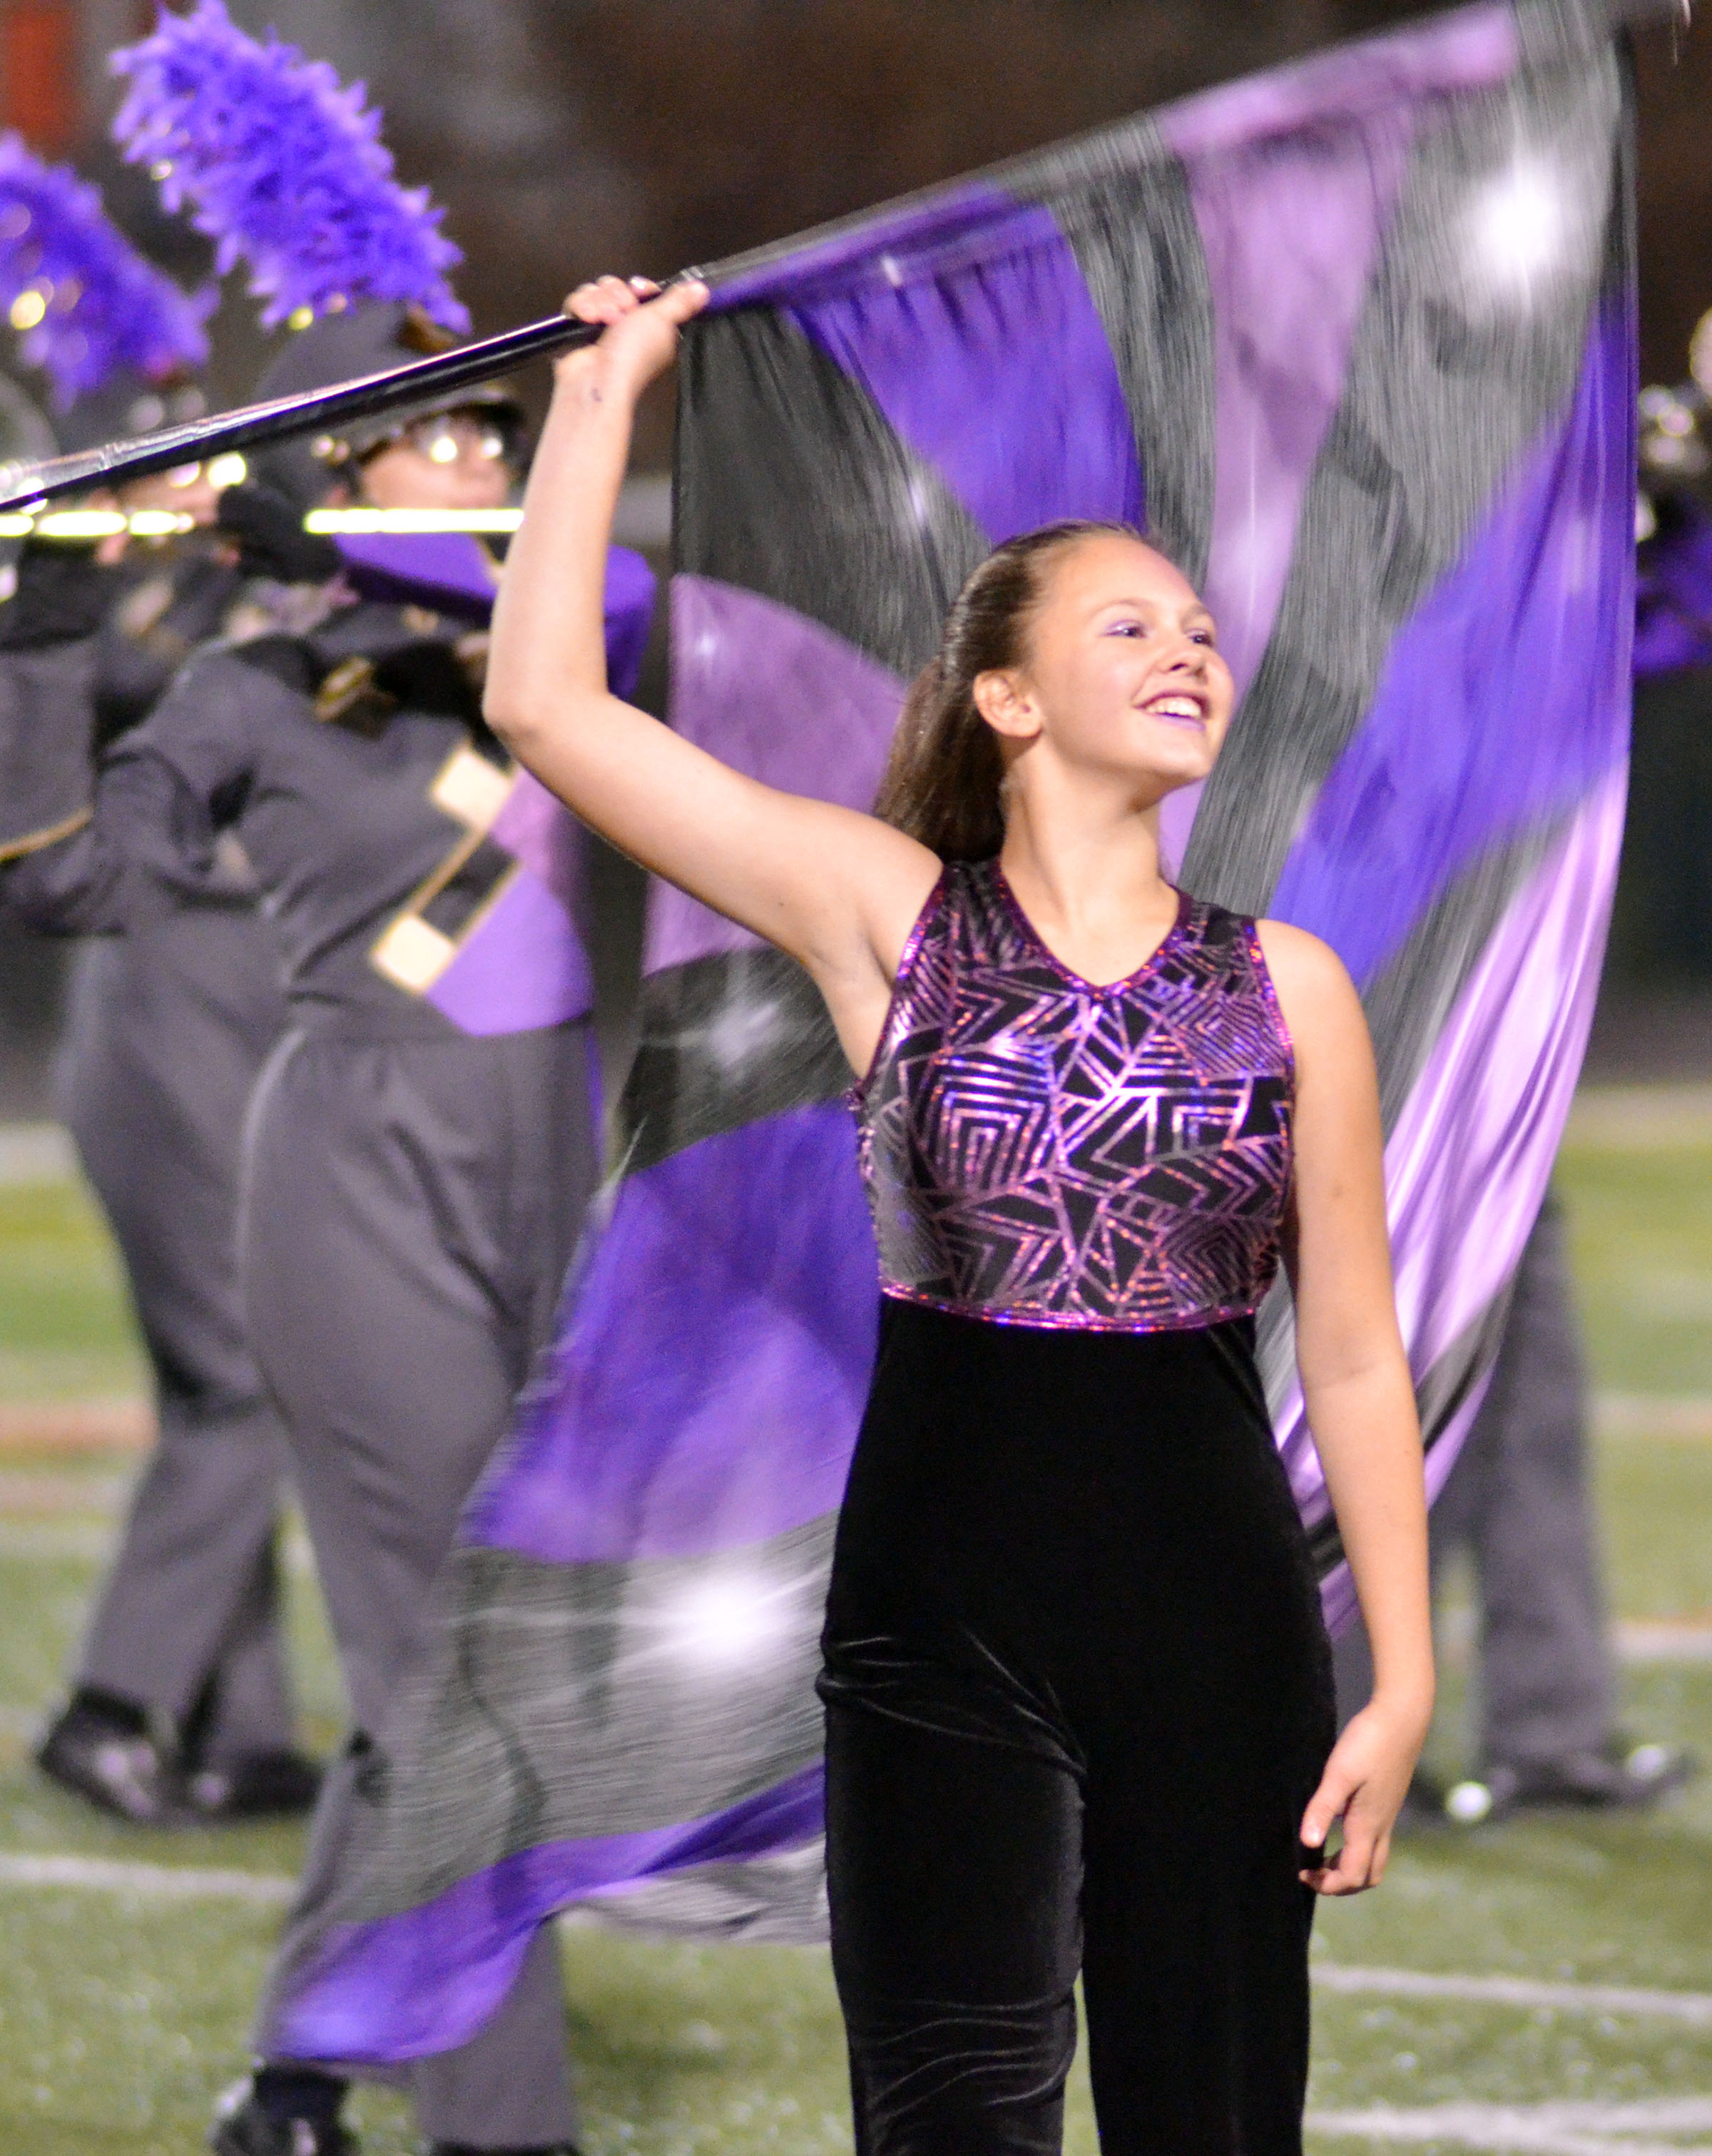 Campbellsville Middle School eighth-grader Mystique Jones performs with the color guard.